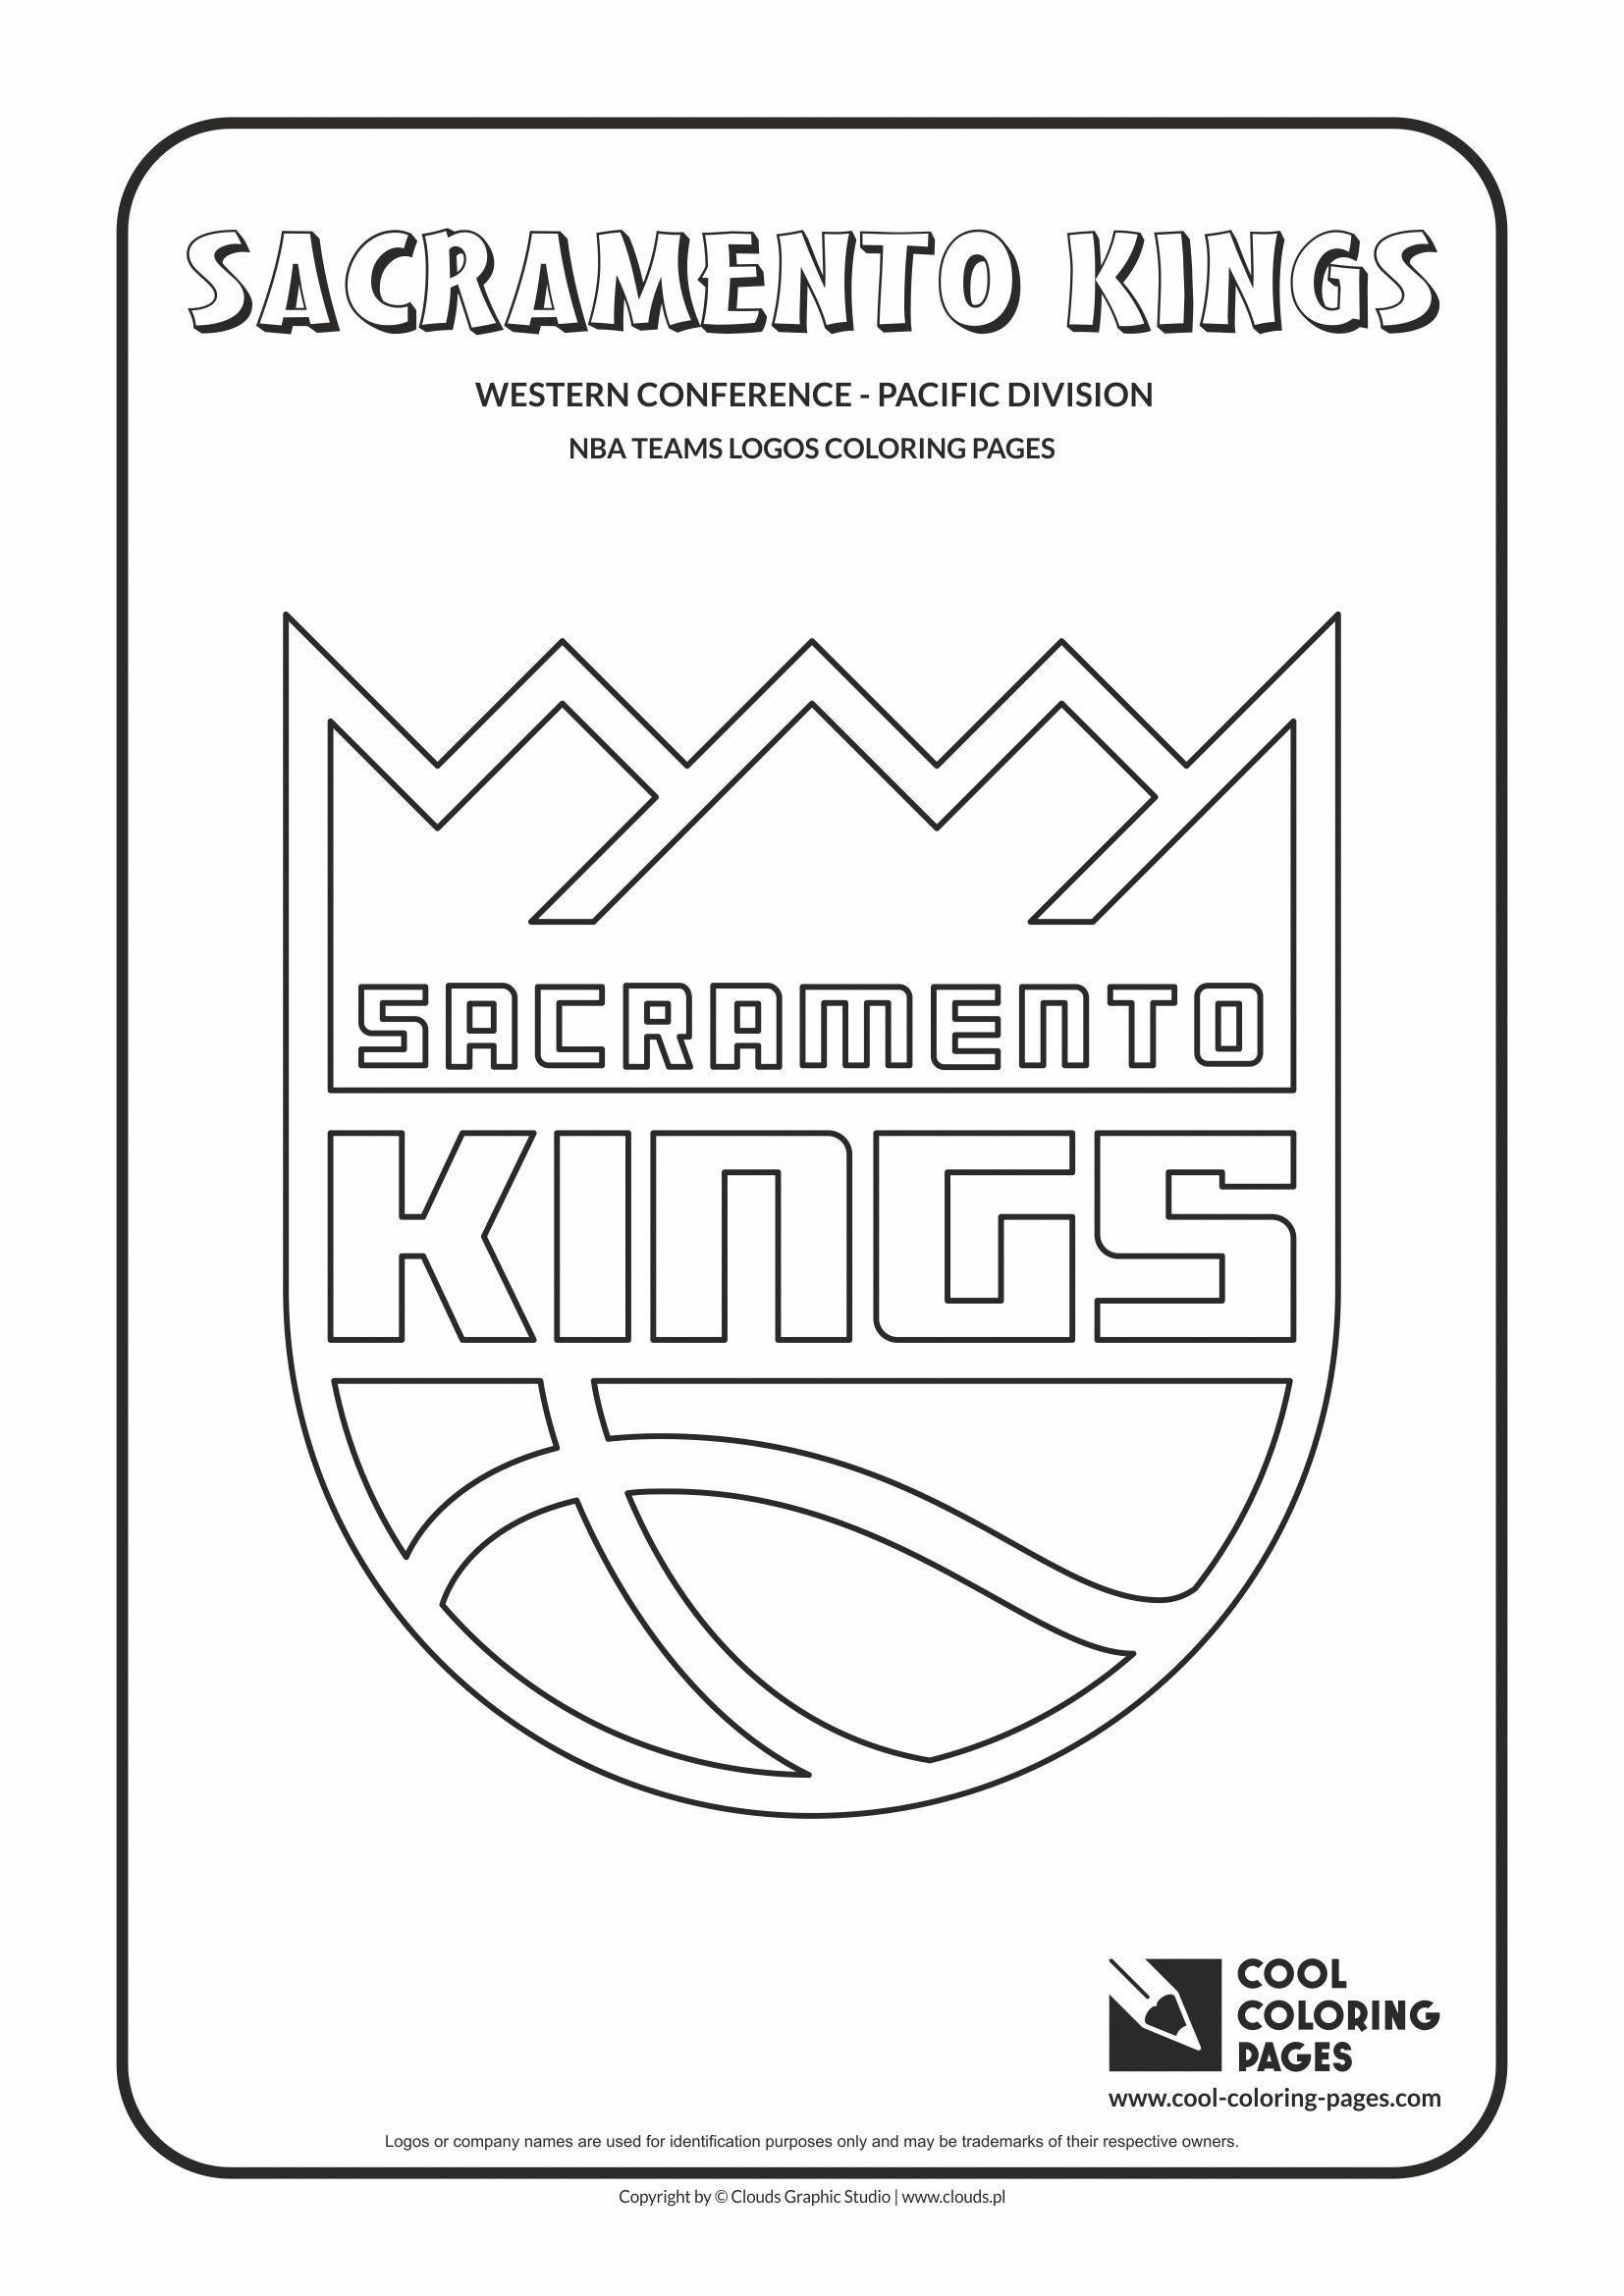 Cool Coloring Pages Nba Basketball Clubs Logos Western Conference Pacific Basketballclub Nba Basketball Teams Cool Coloring Pages Nba Basketball